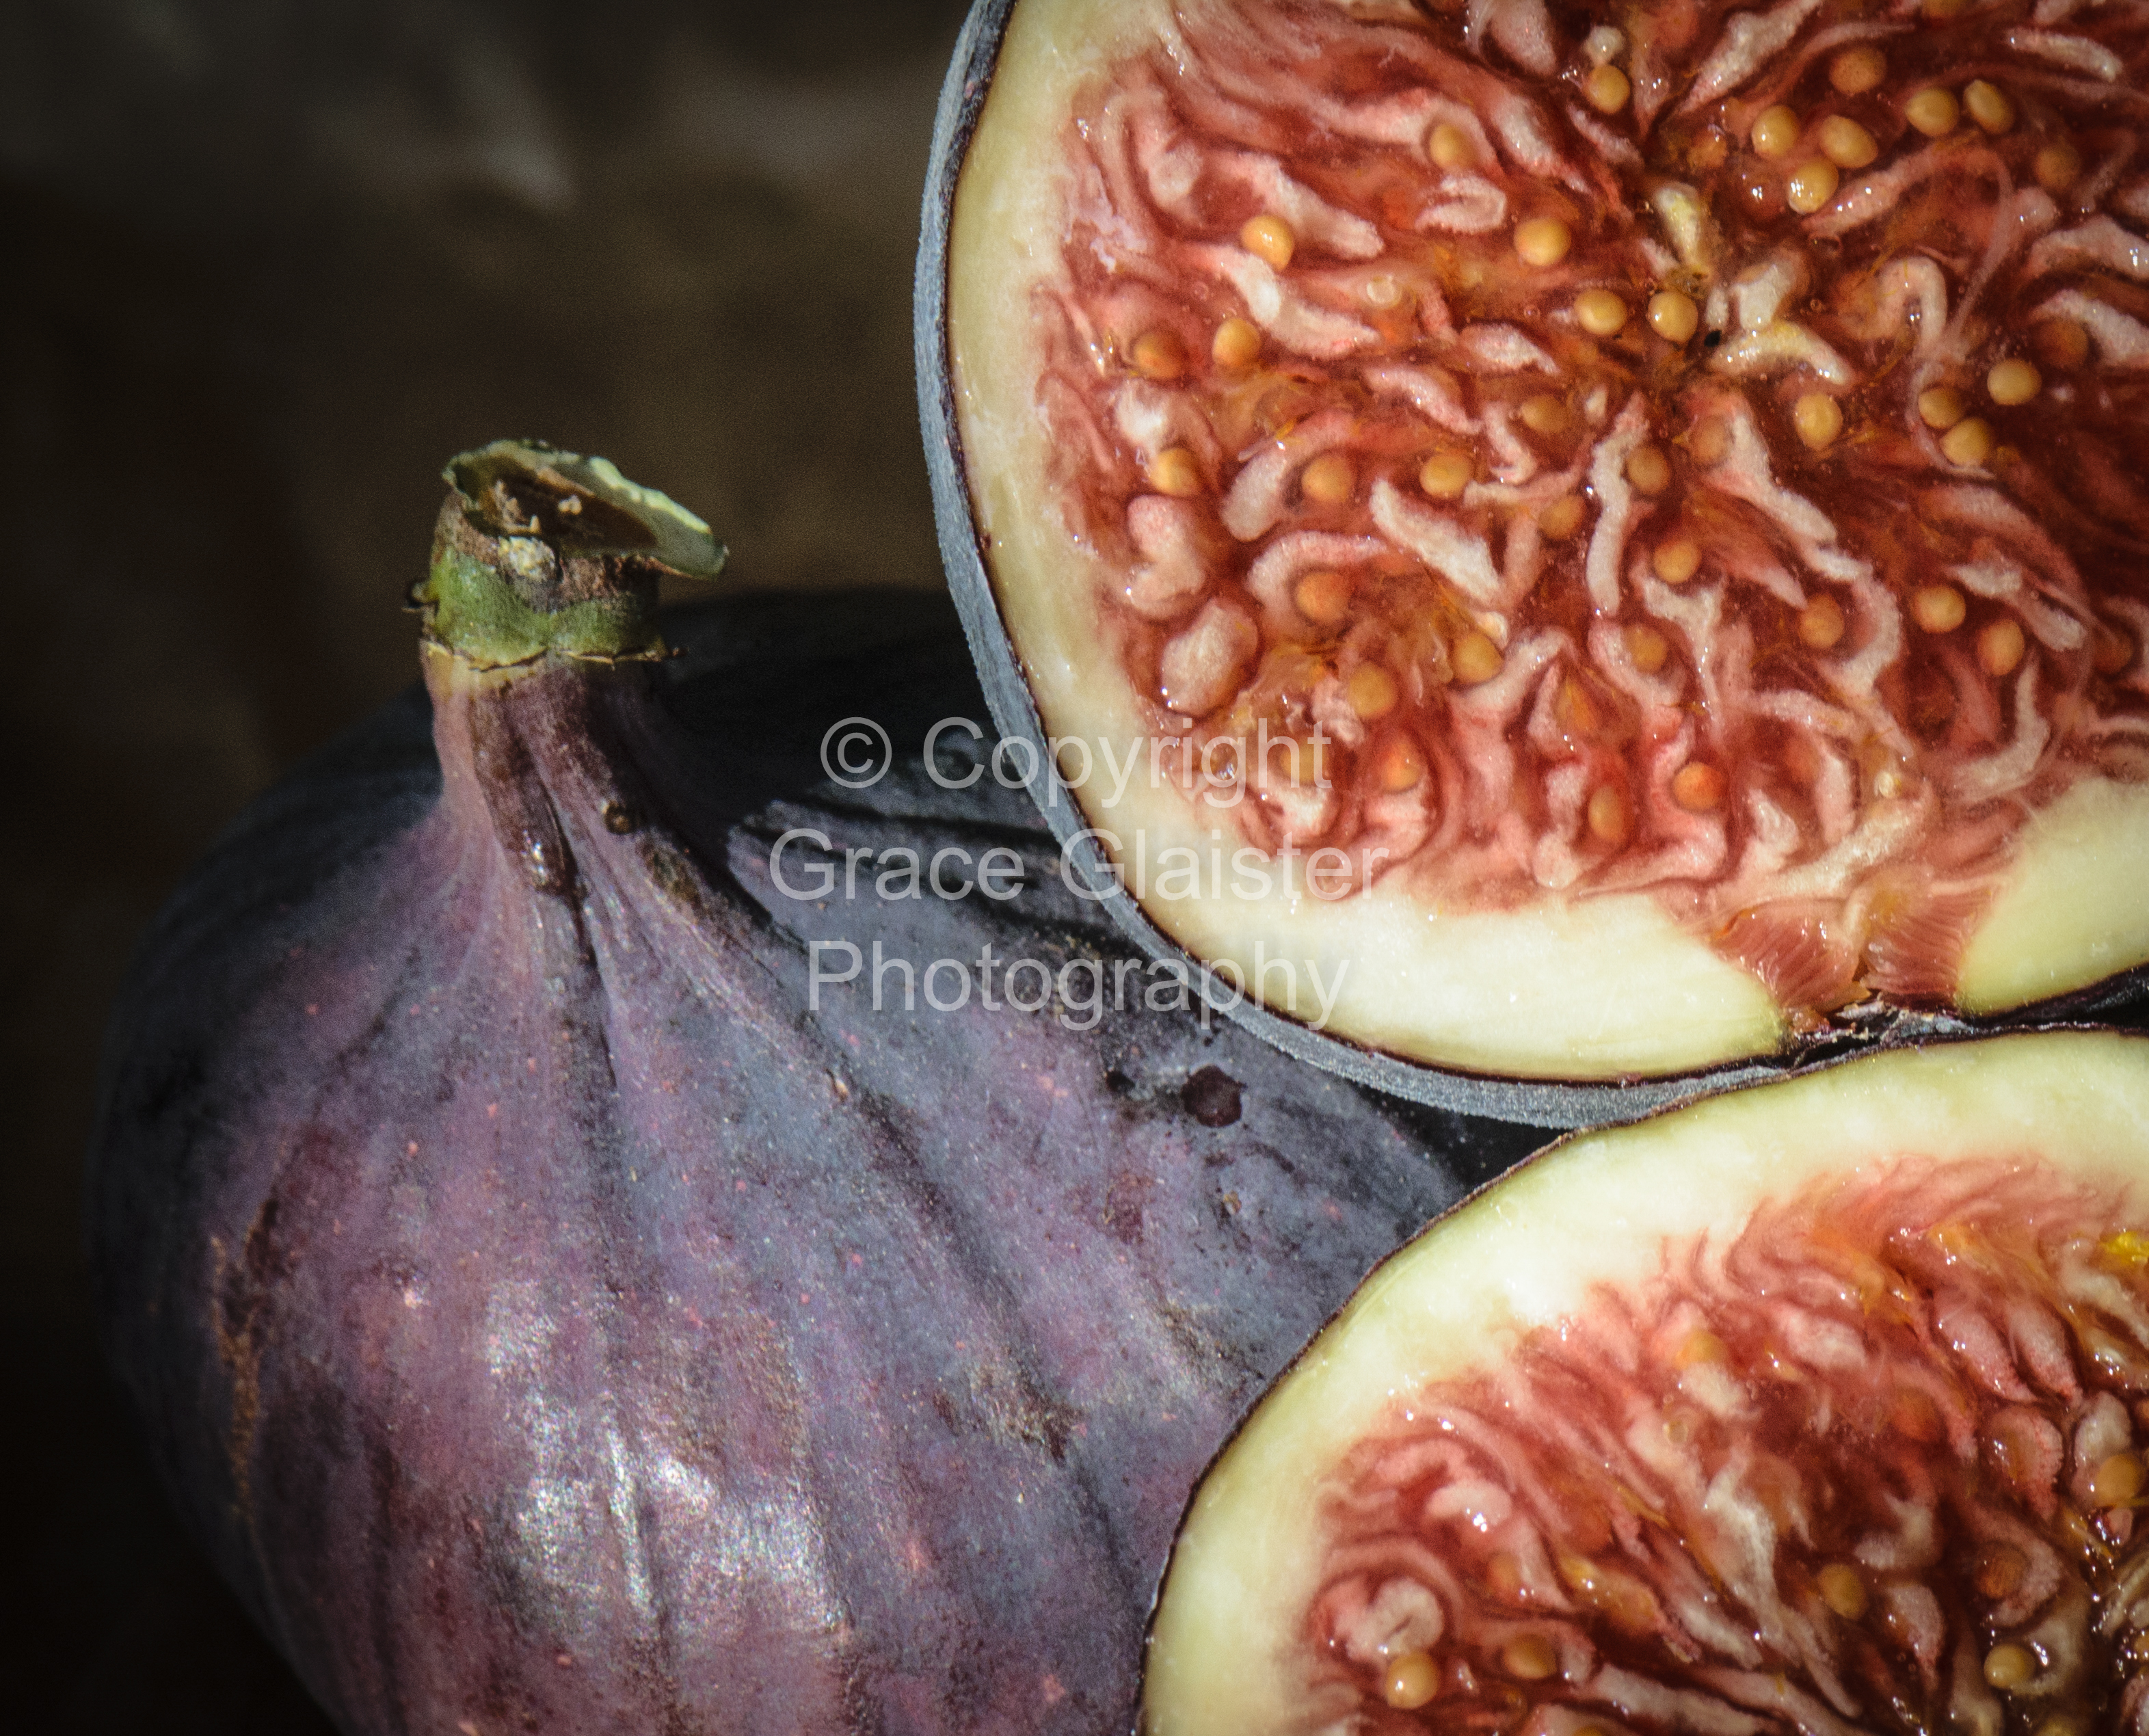 Figs by Grace Glaister